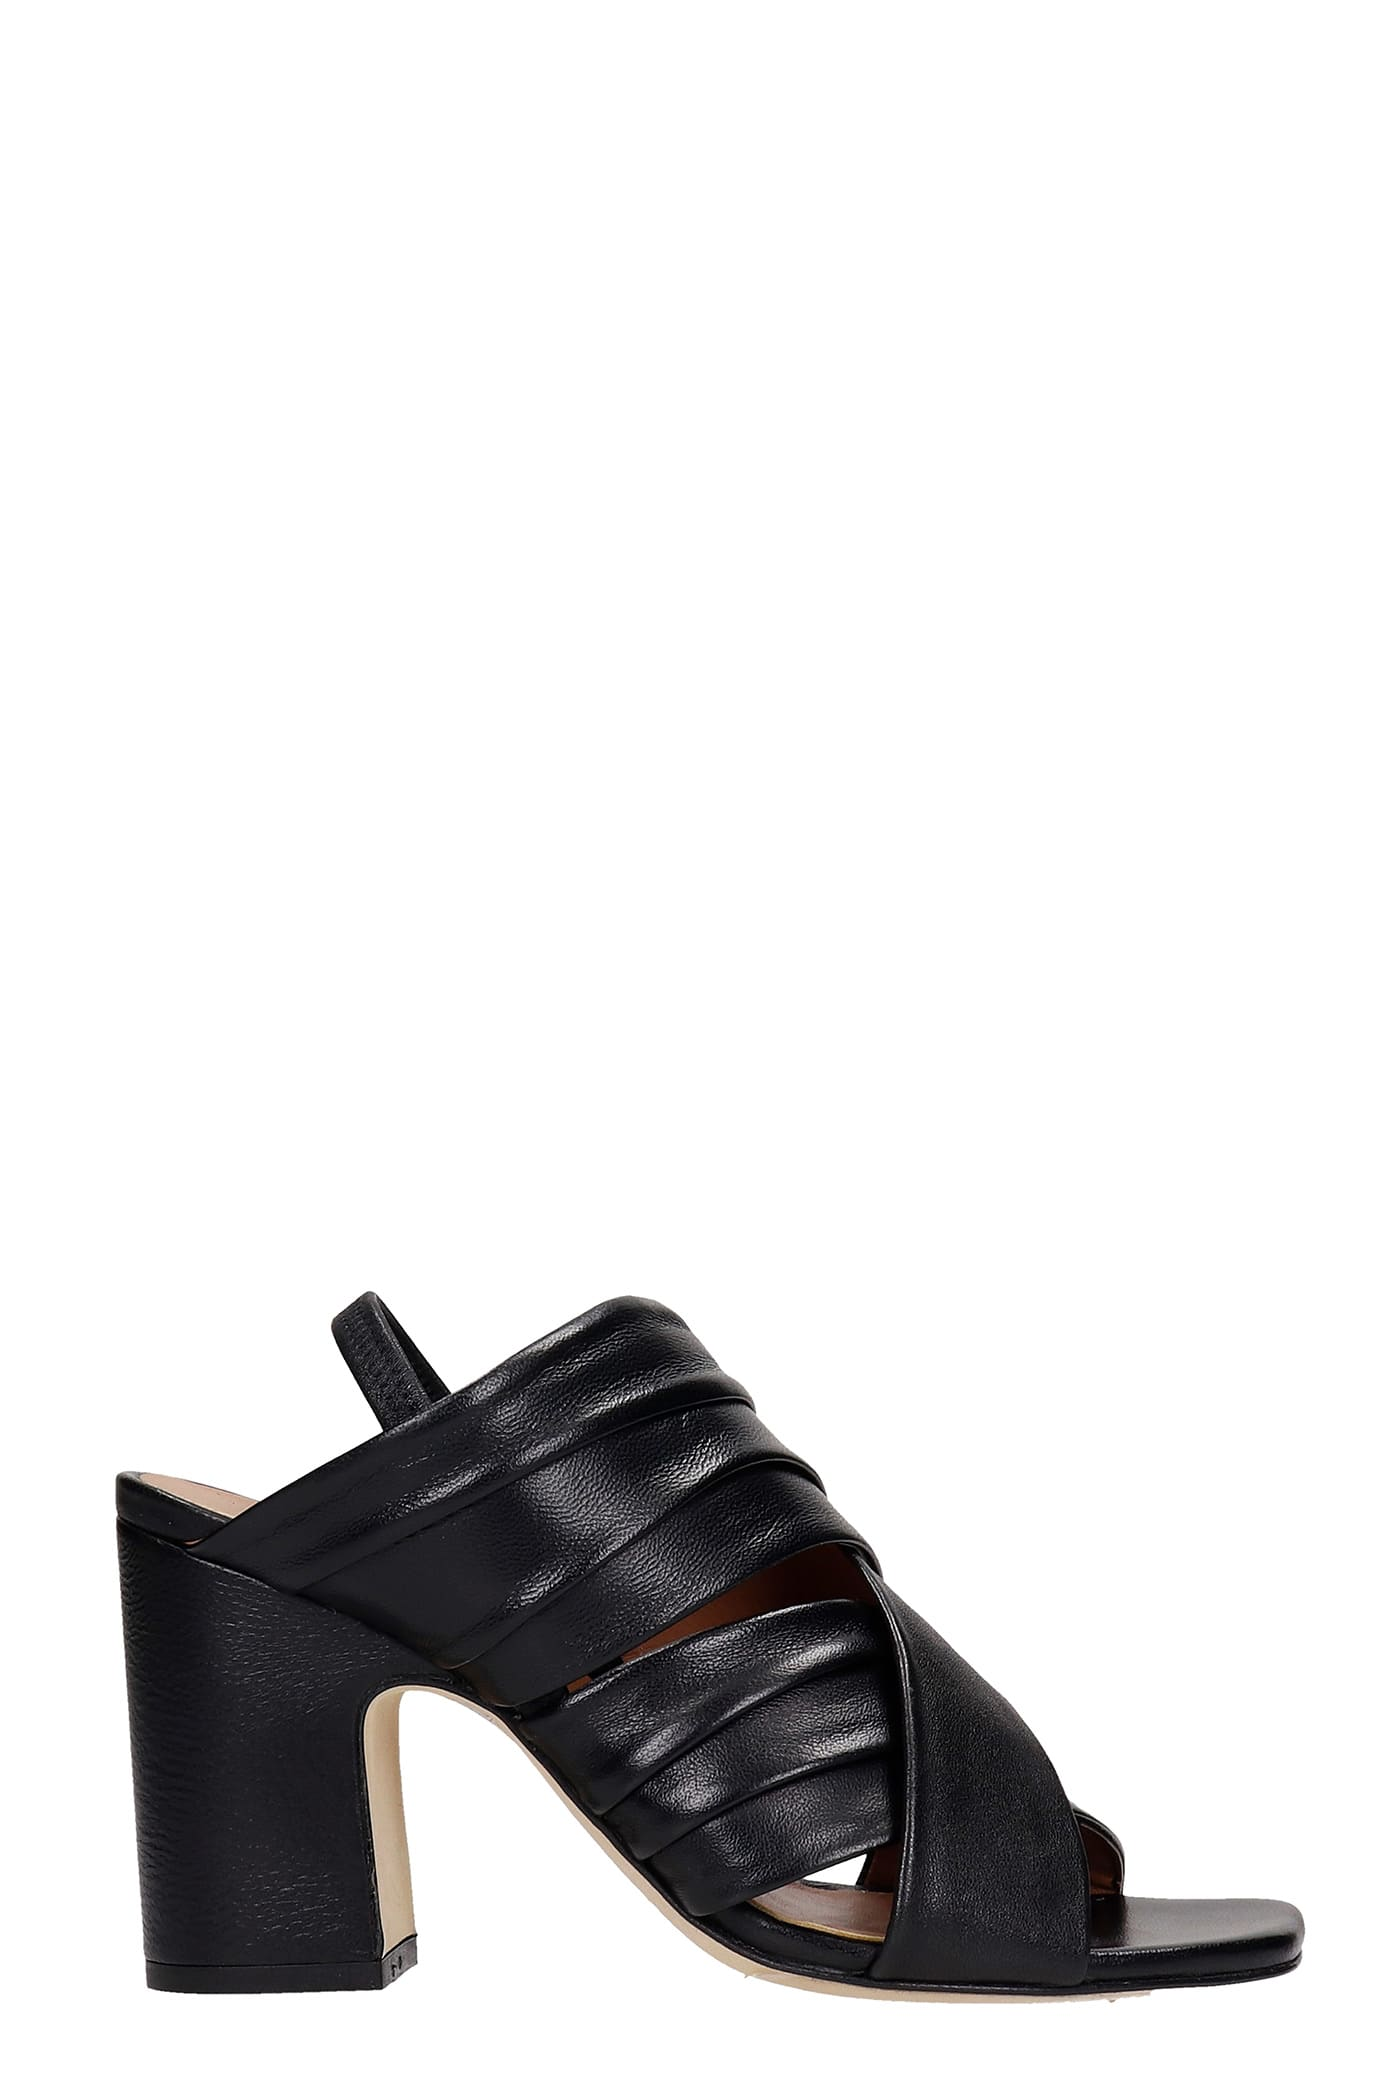 Sandals In Black Leather